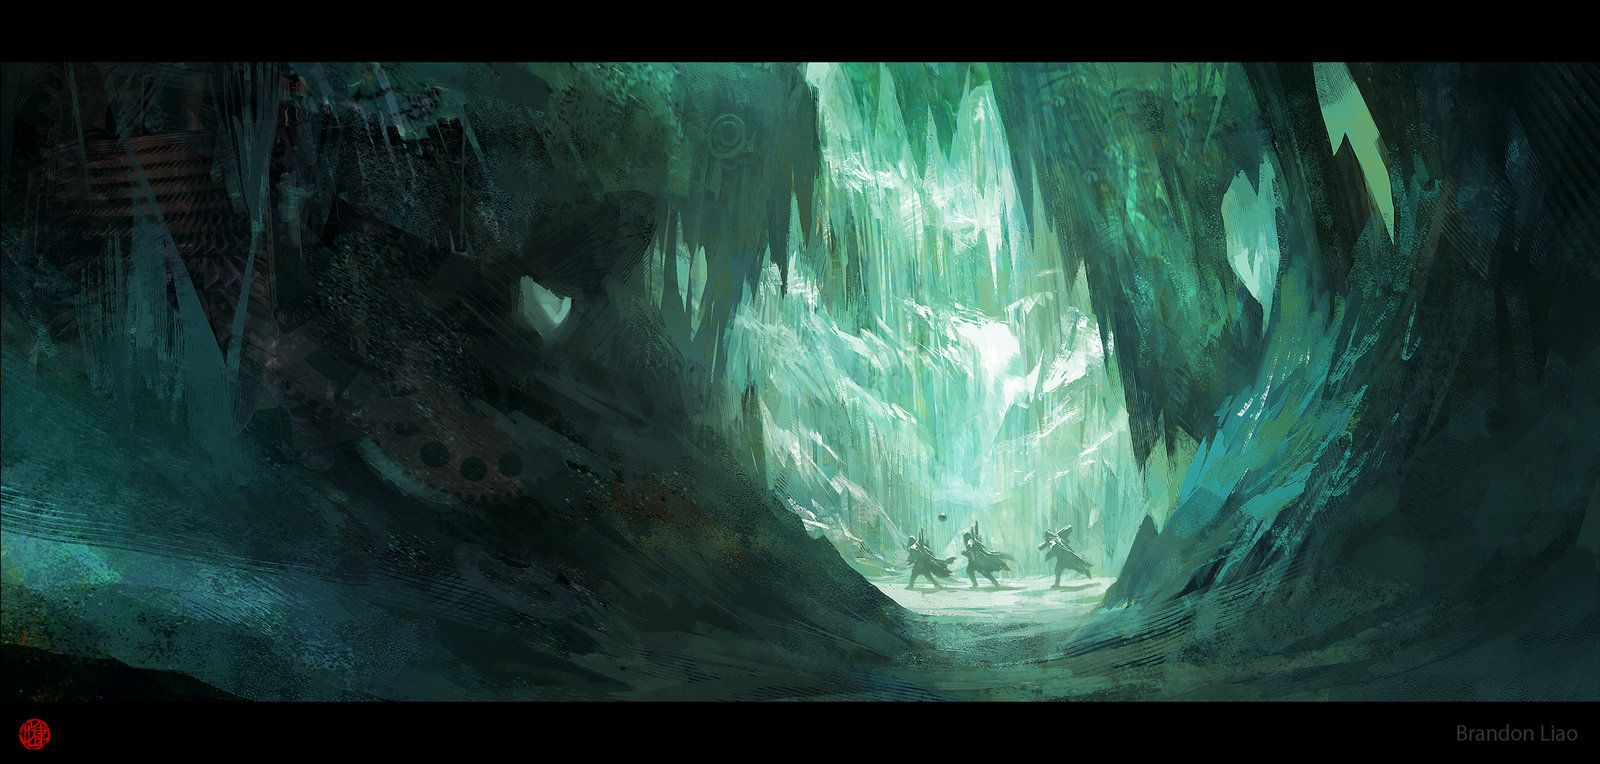 airbrushed artwork cavern concept - photo #14